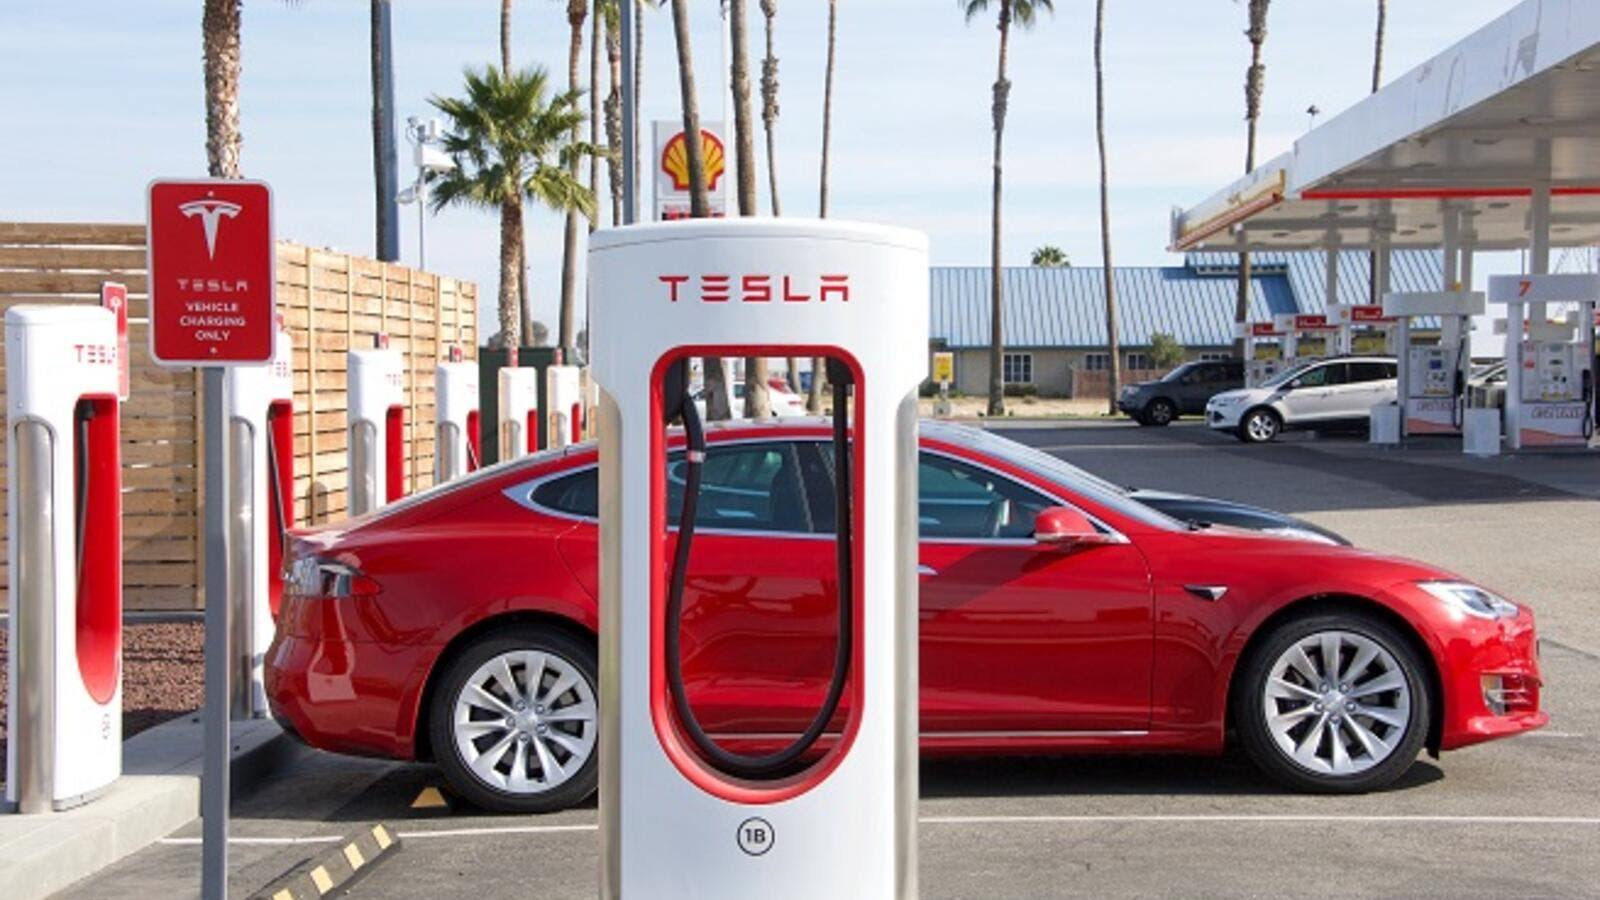 Electric automaker Tesla has formed an independent special committee to explore the possibility of becoming a private company. (Shutterstock)